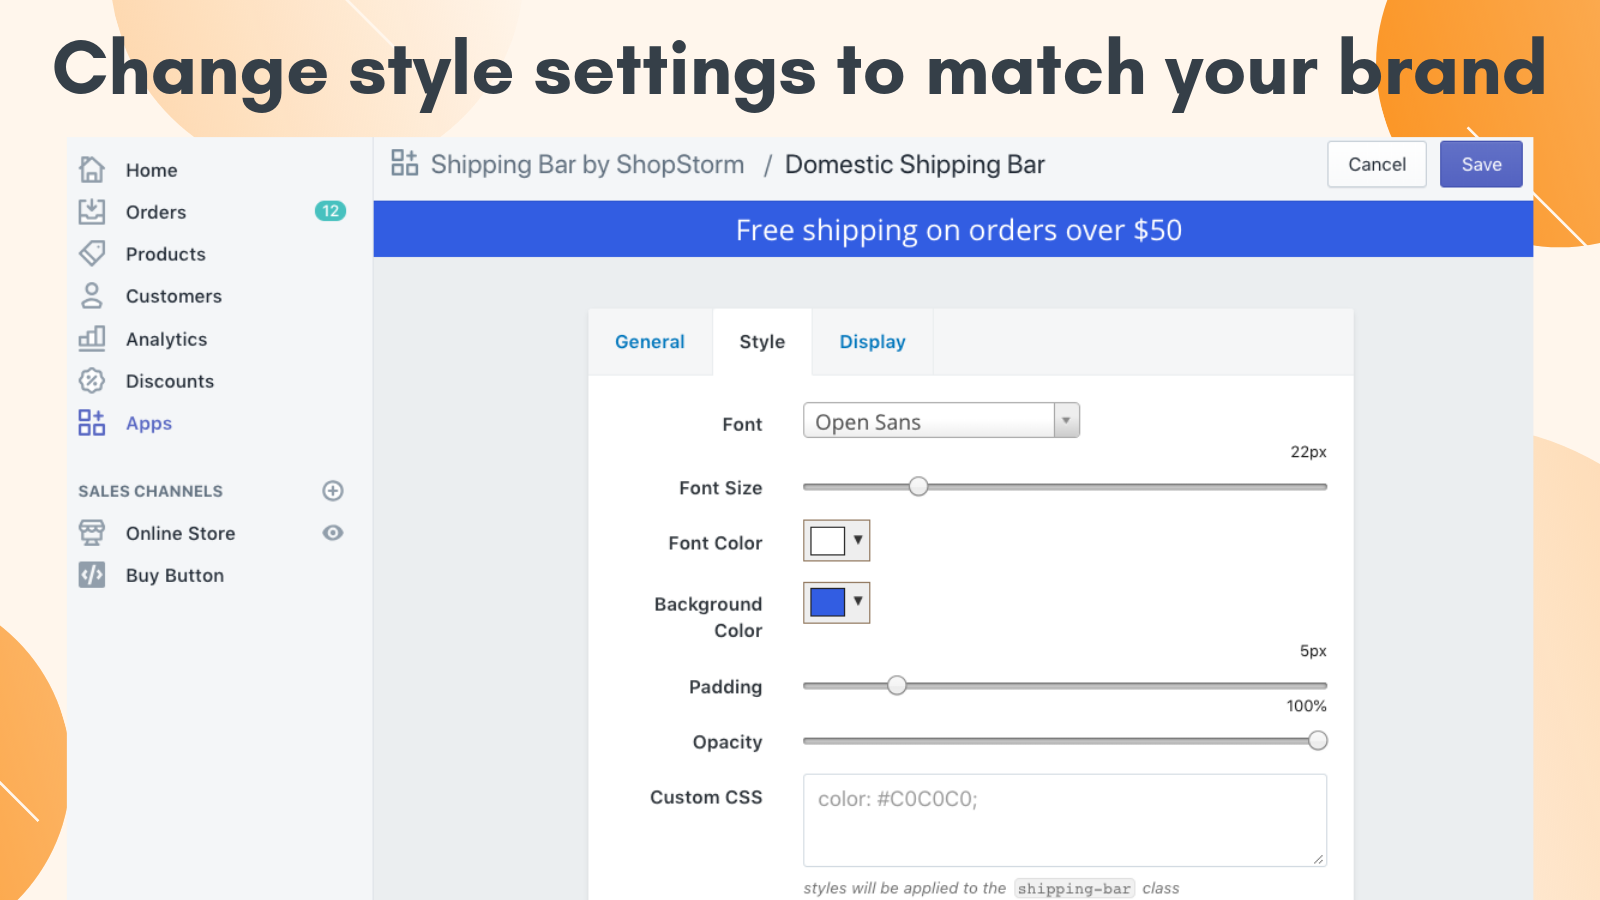 Style settings to match your brand